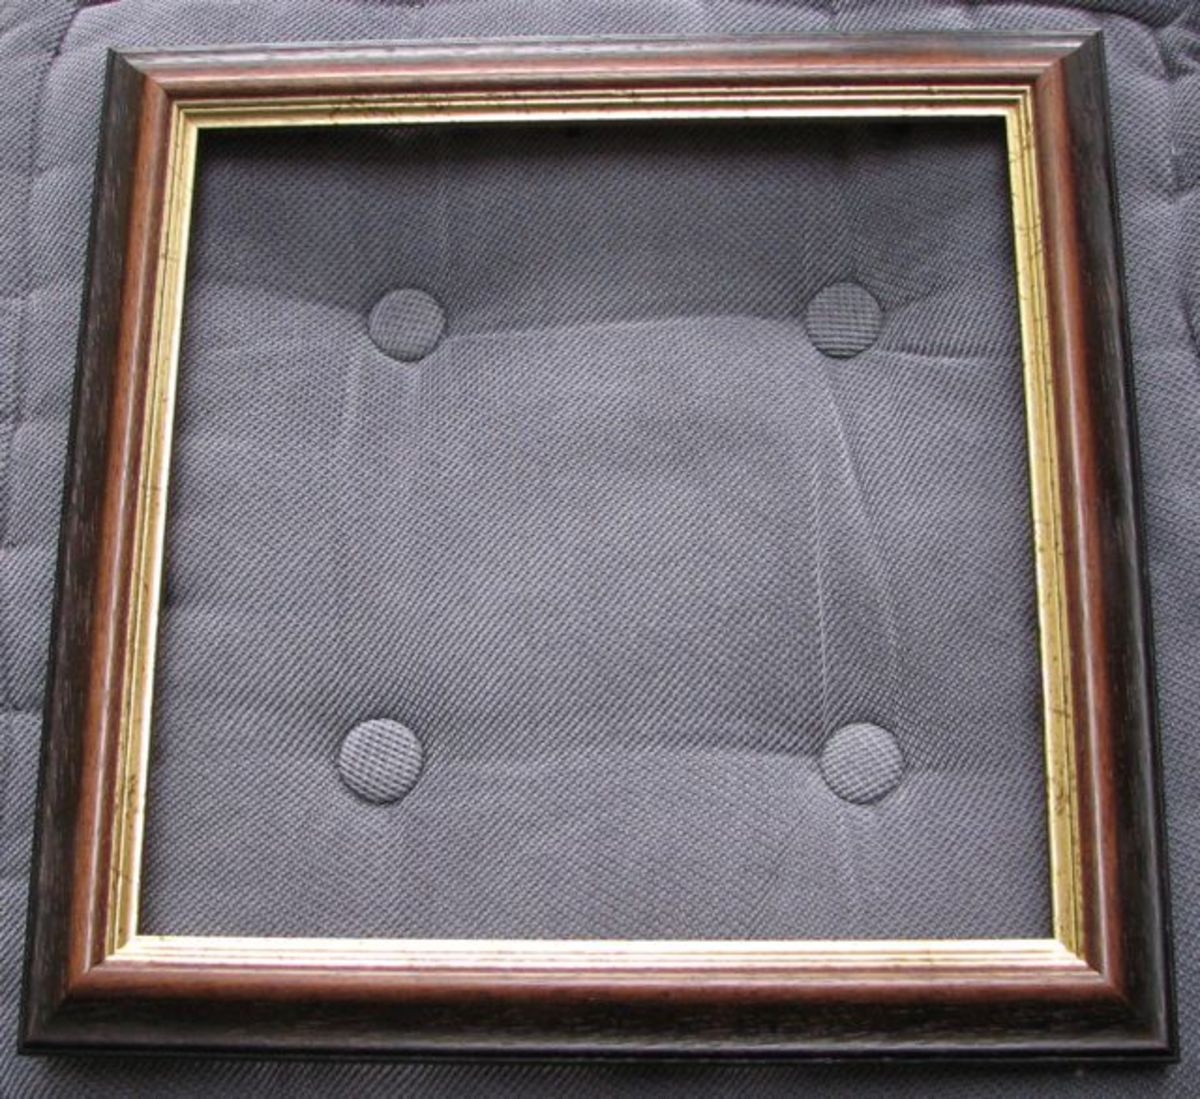 Frame, glass removed